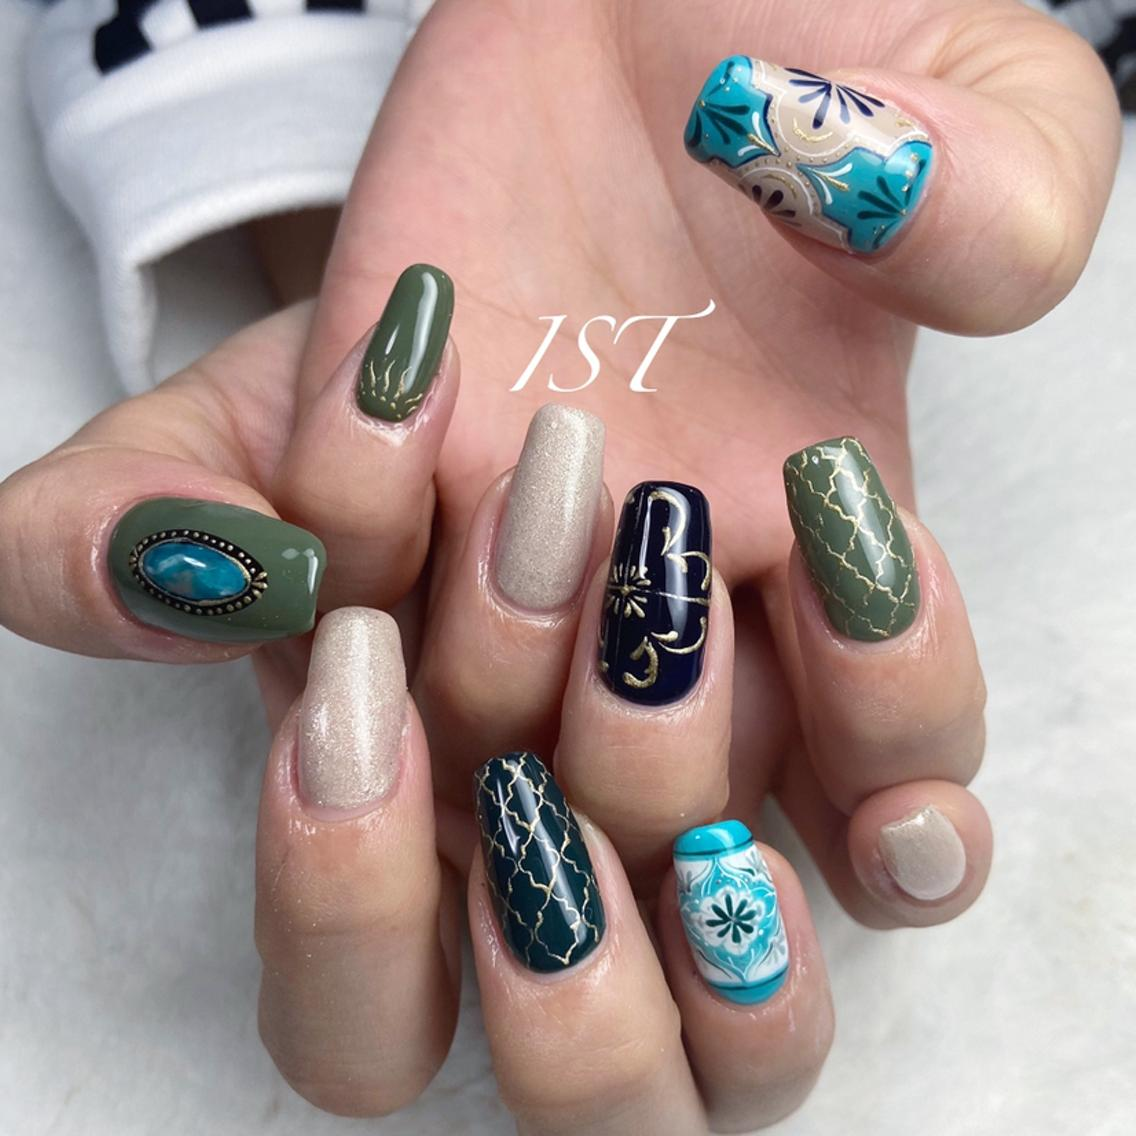 IST Nail&Relaxation Room所属・@Shucoの掲載